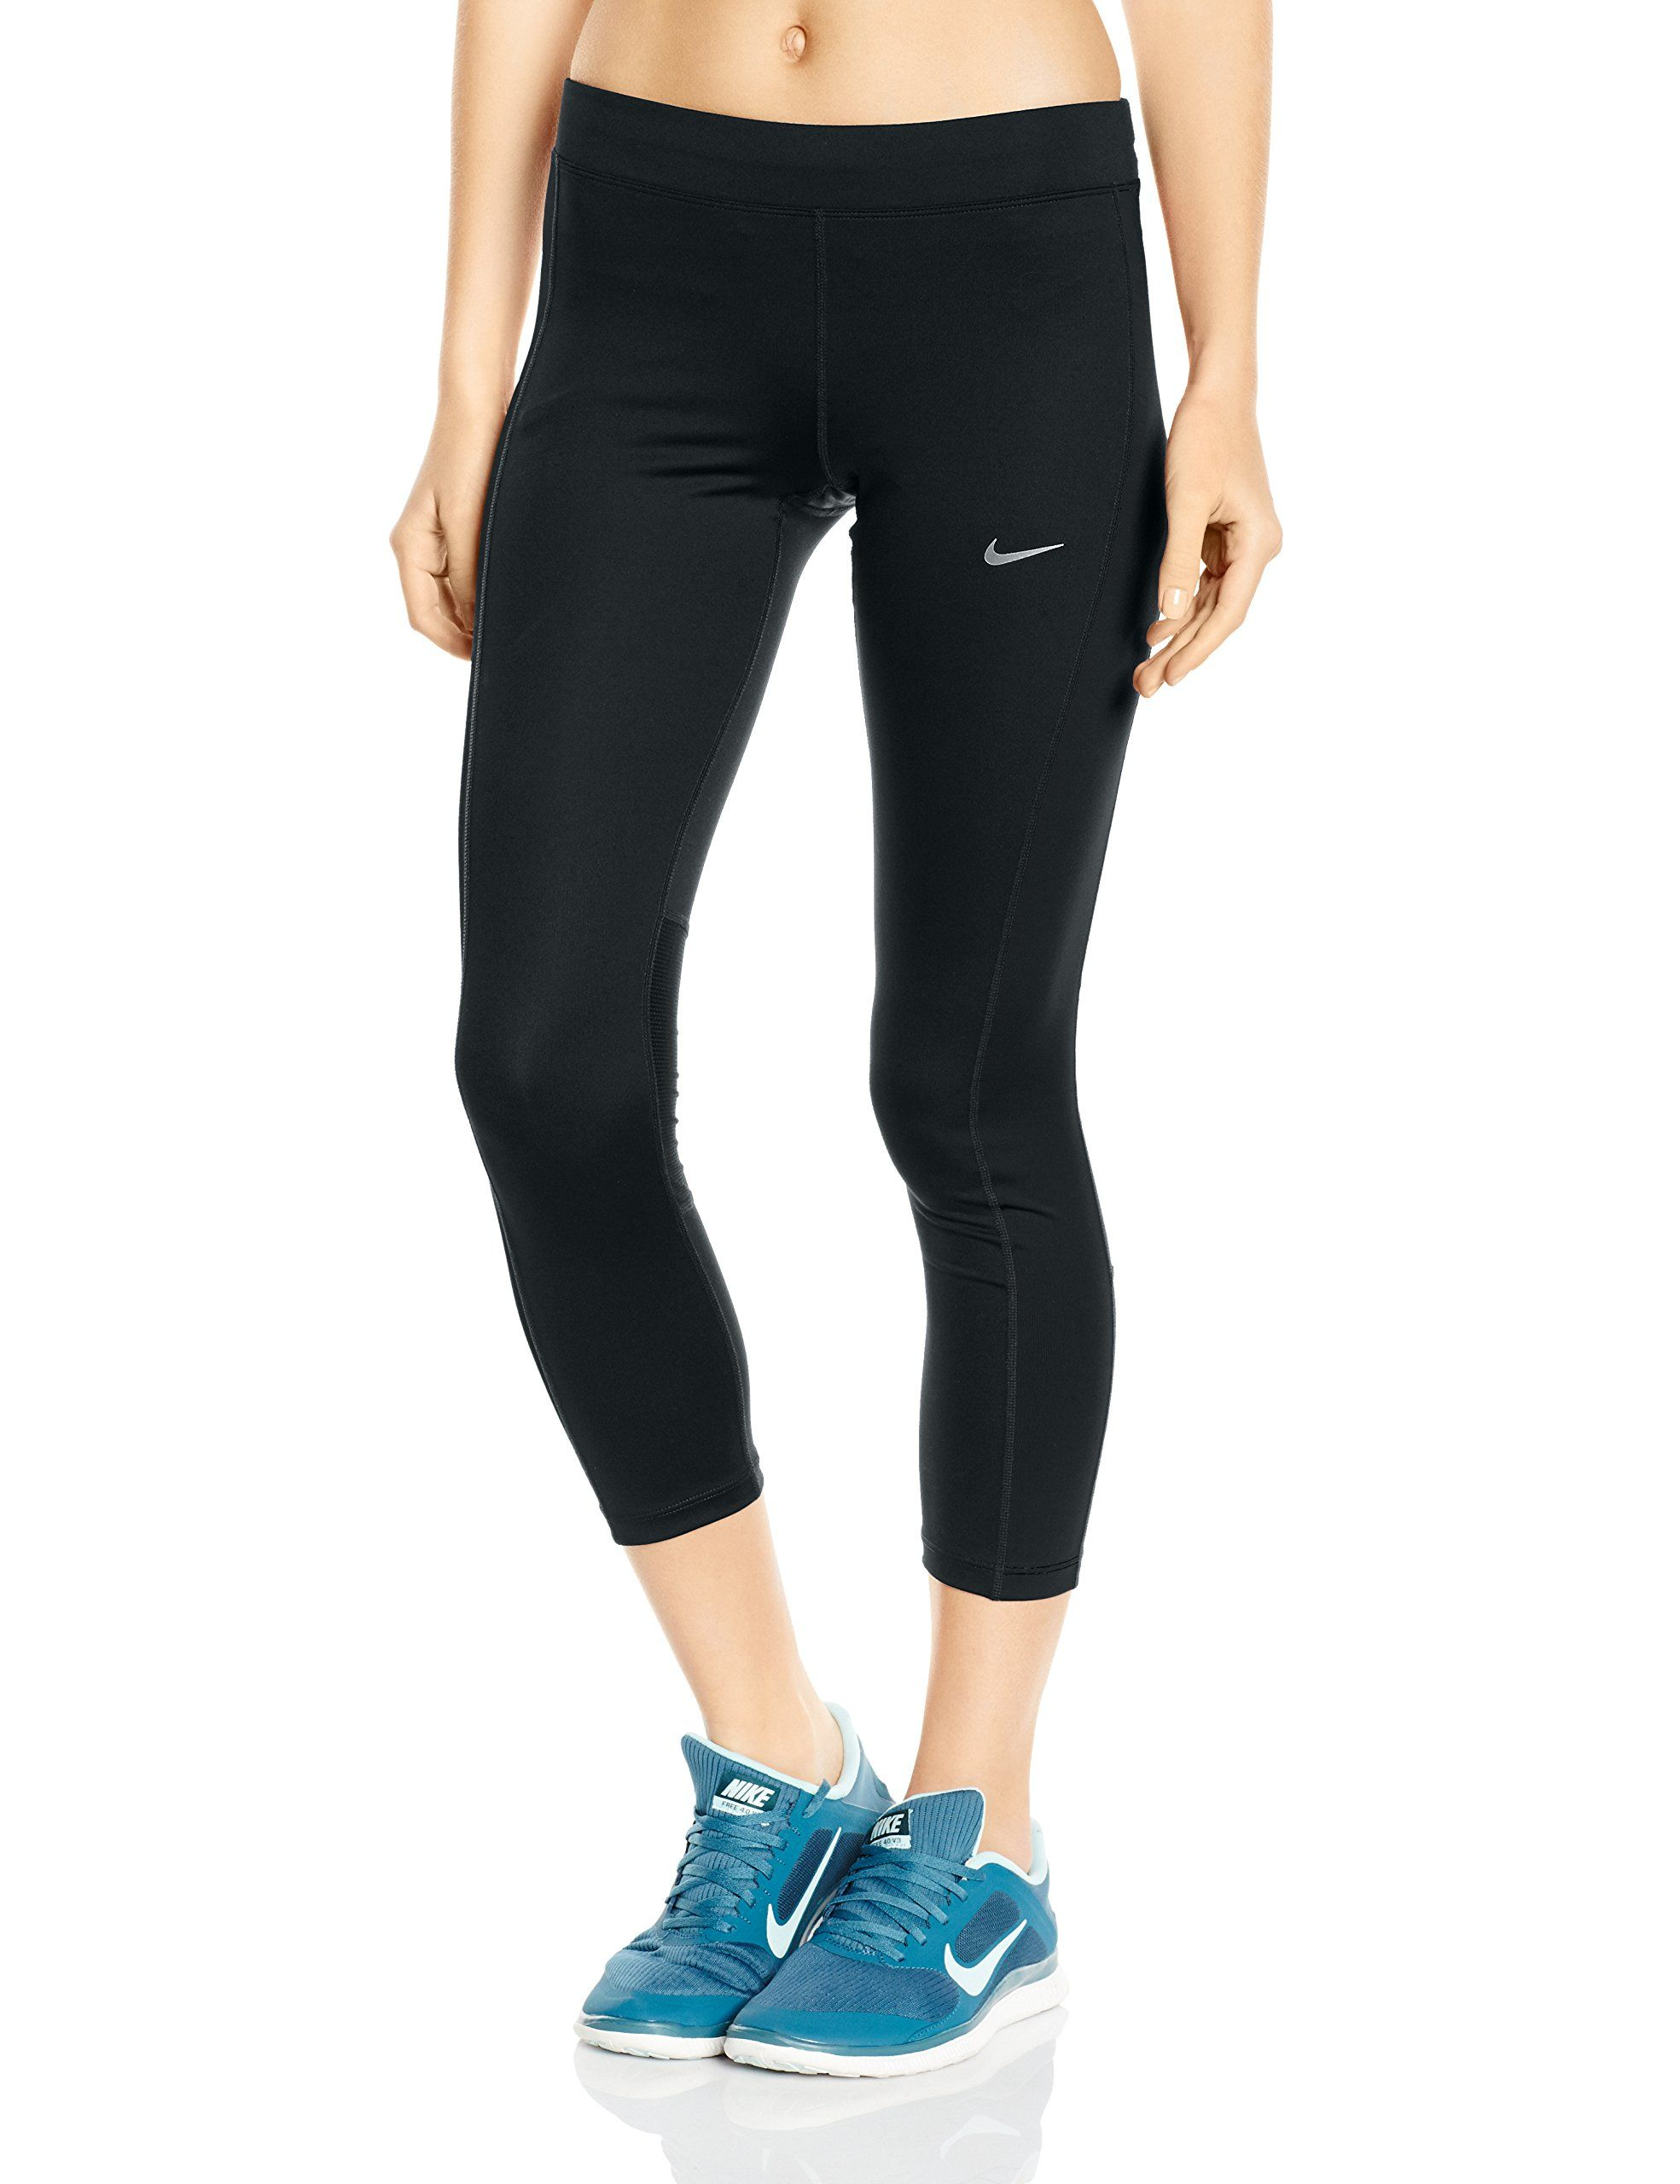 aaa11a8cb9bc Nike Women's Essential Running Crop, Black/Black/Reflective Silver, Large.  Waistband